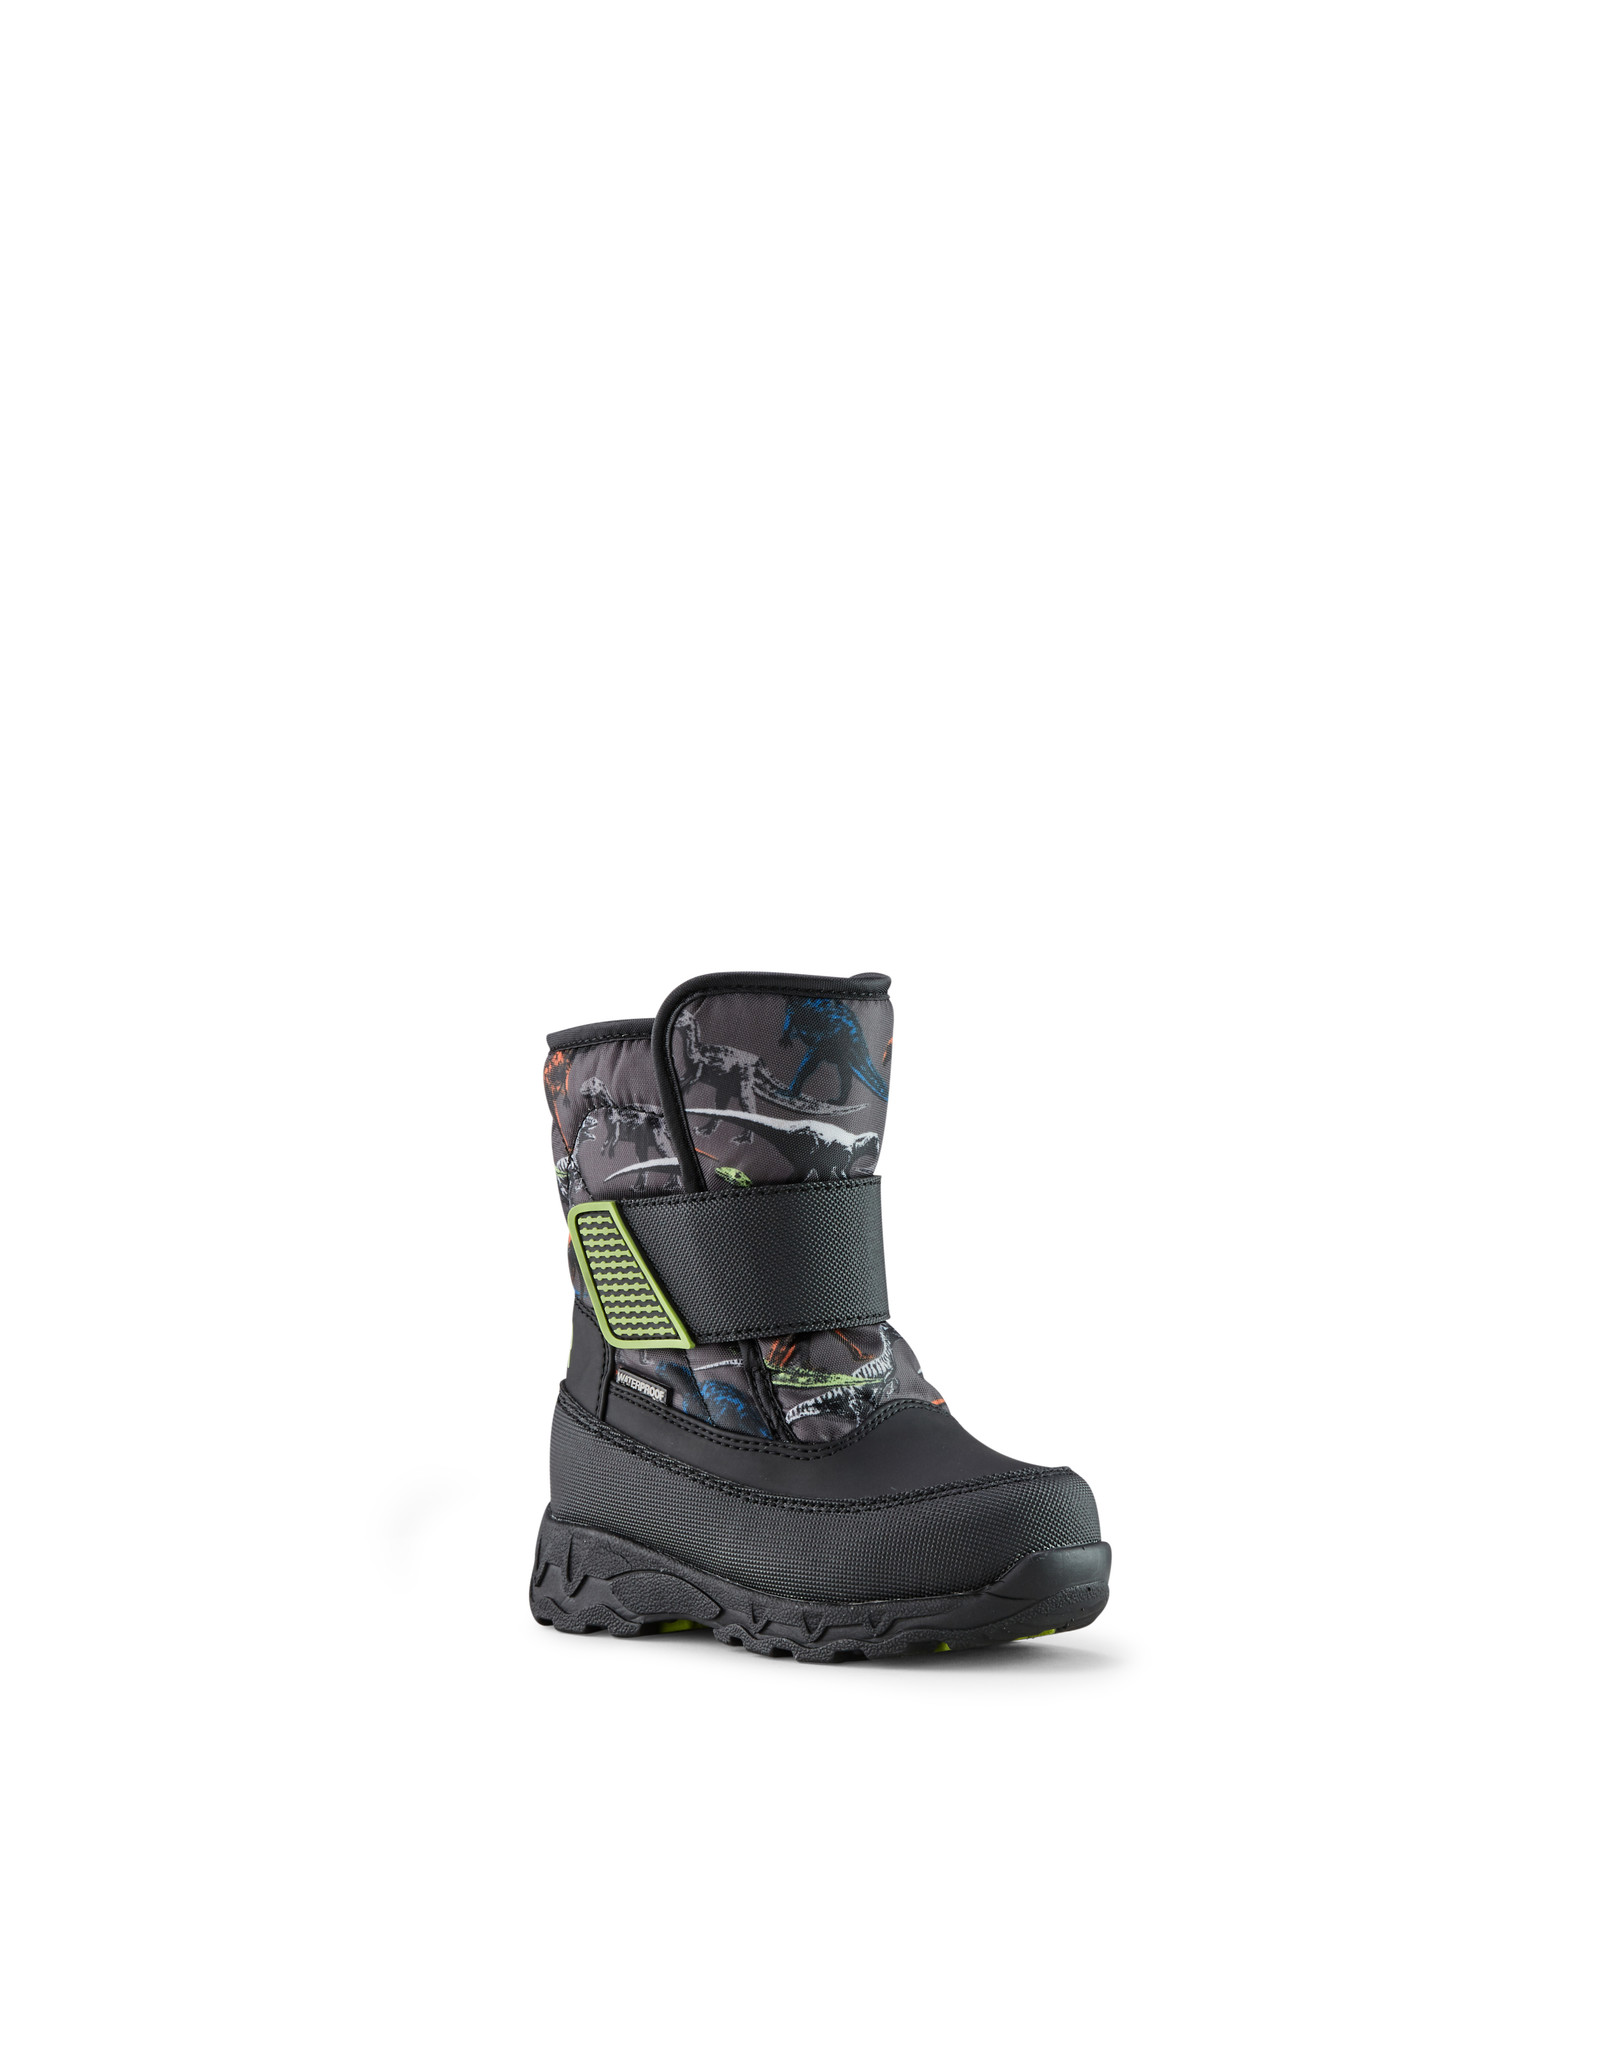 COUGAR COUGAR SPIKE SNOW BOOT